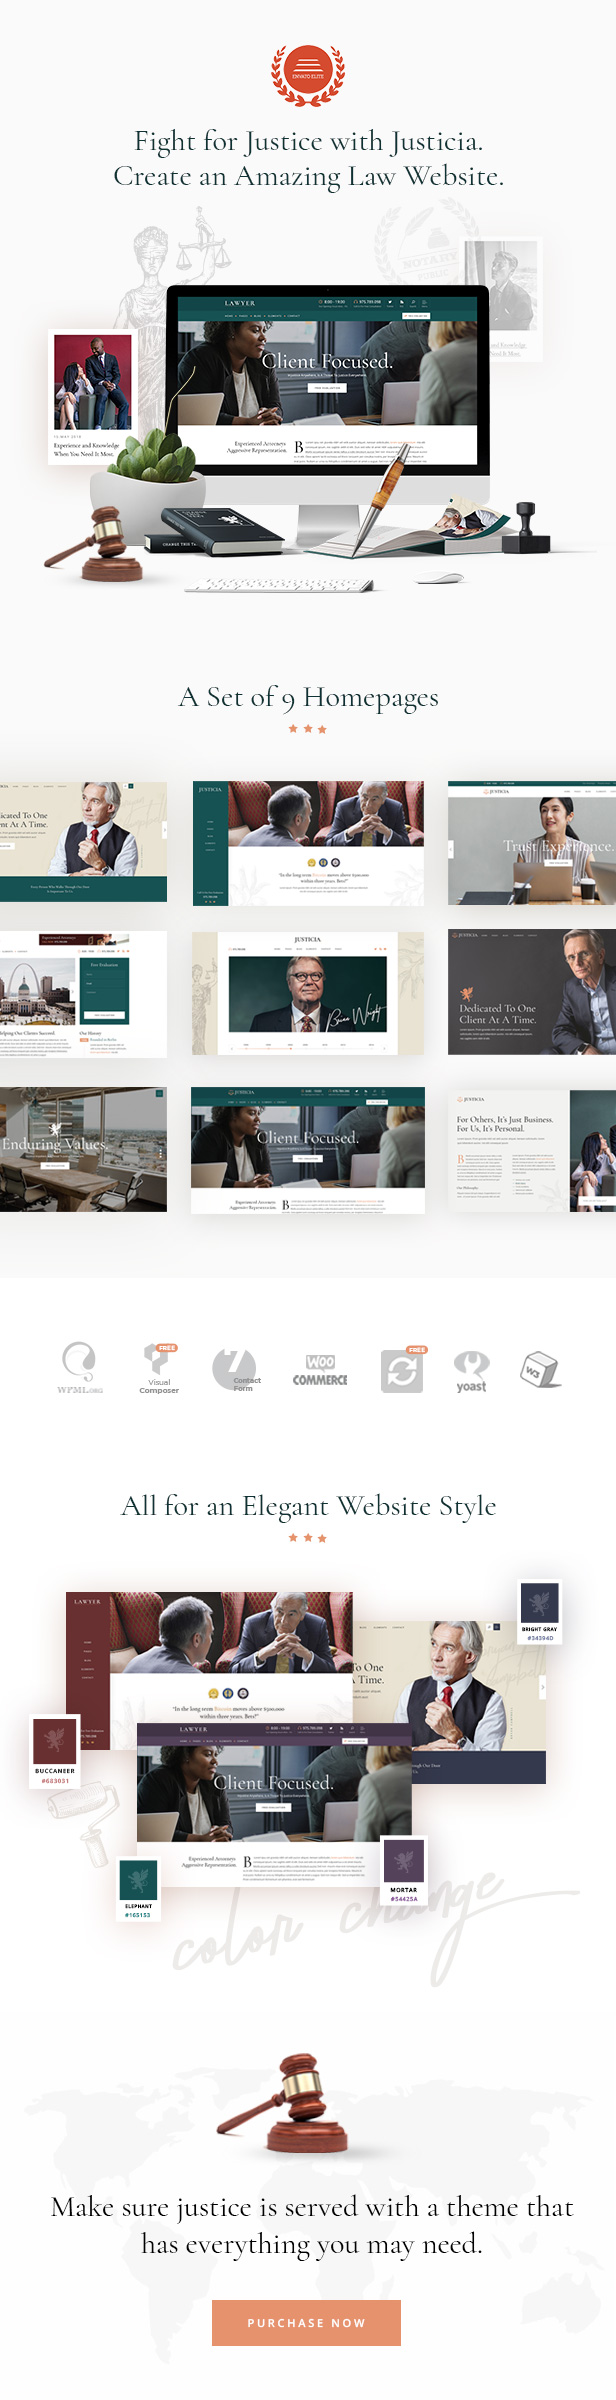 Justice - Lawyer and Law Firm Theme - 1